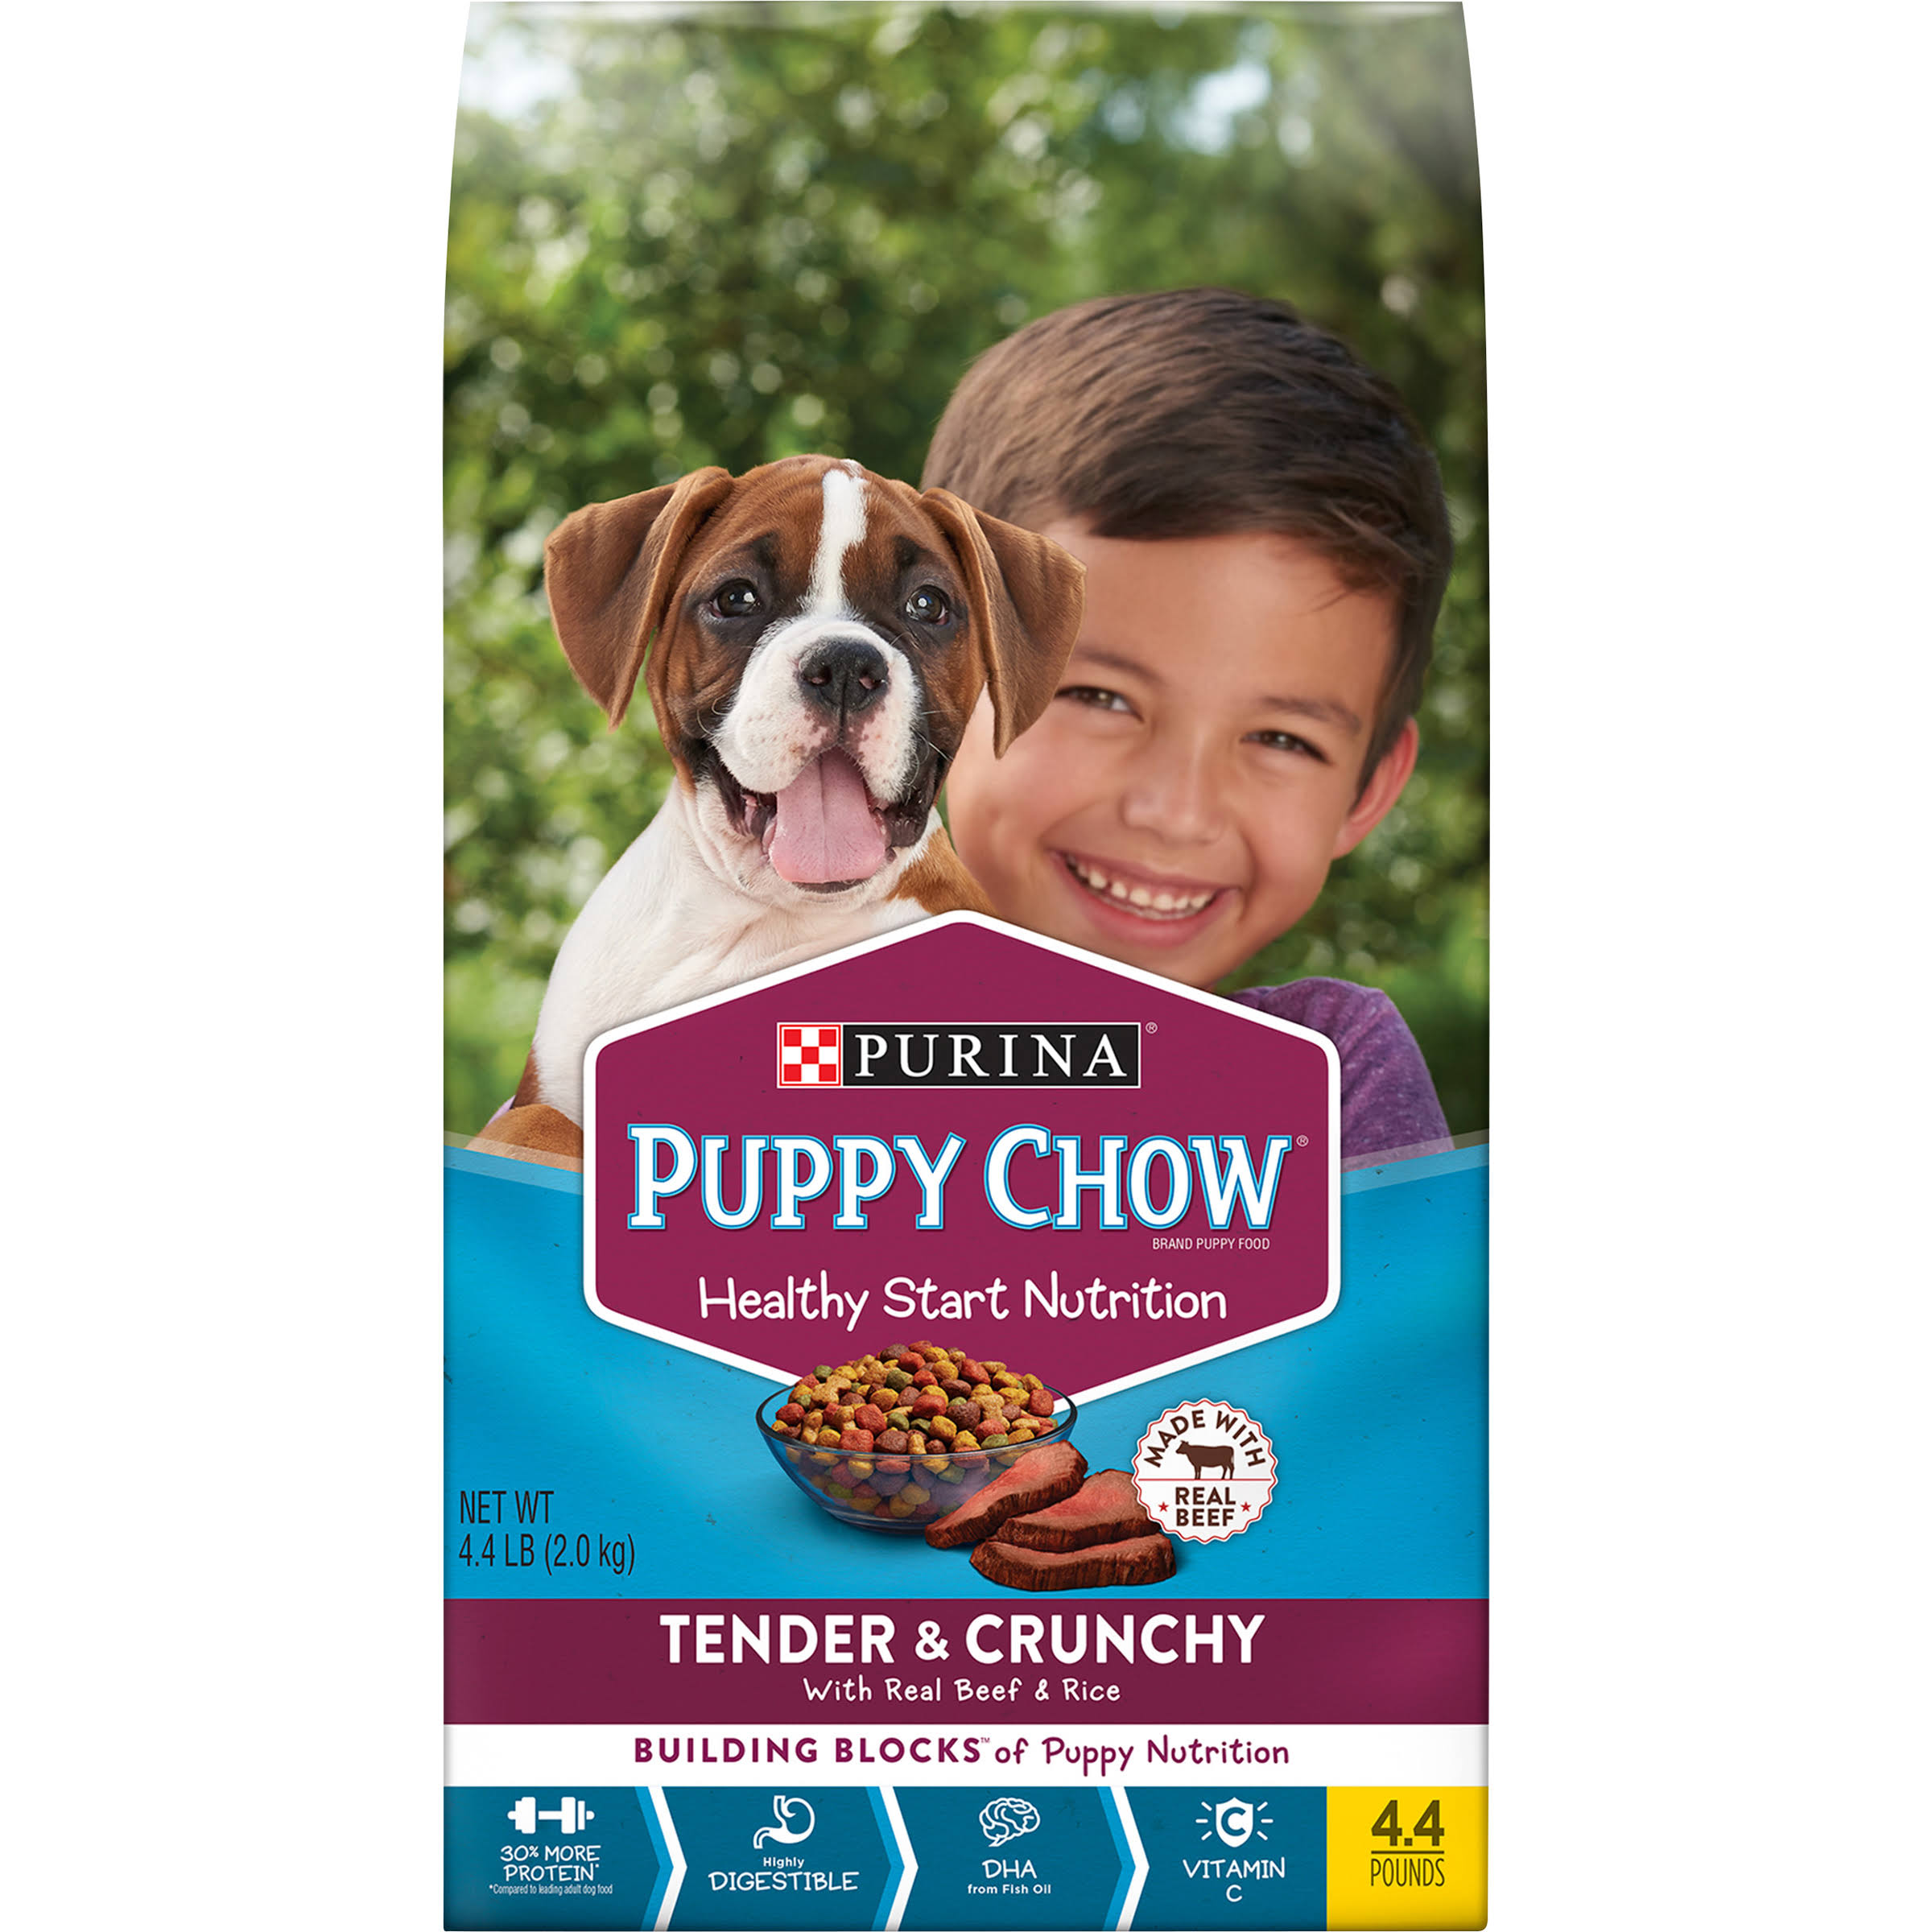 Purina Puppy Chow Puppy Food, Tender & Crunchy - 4.4 lb